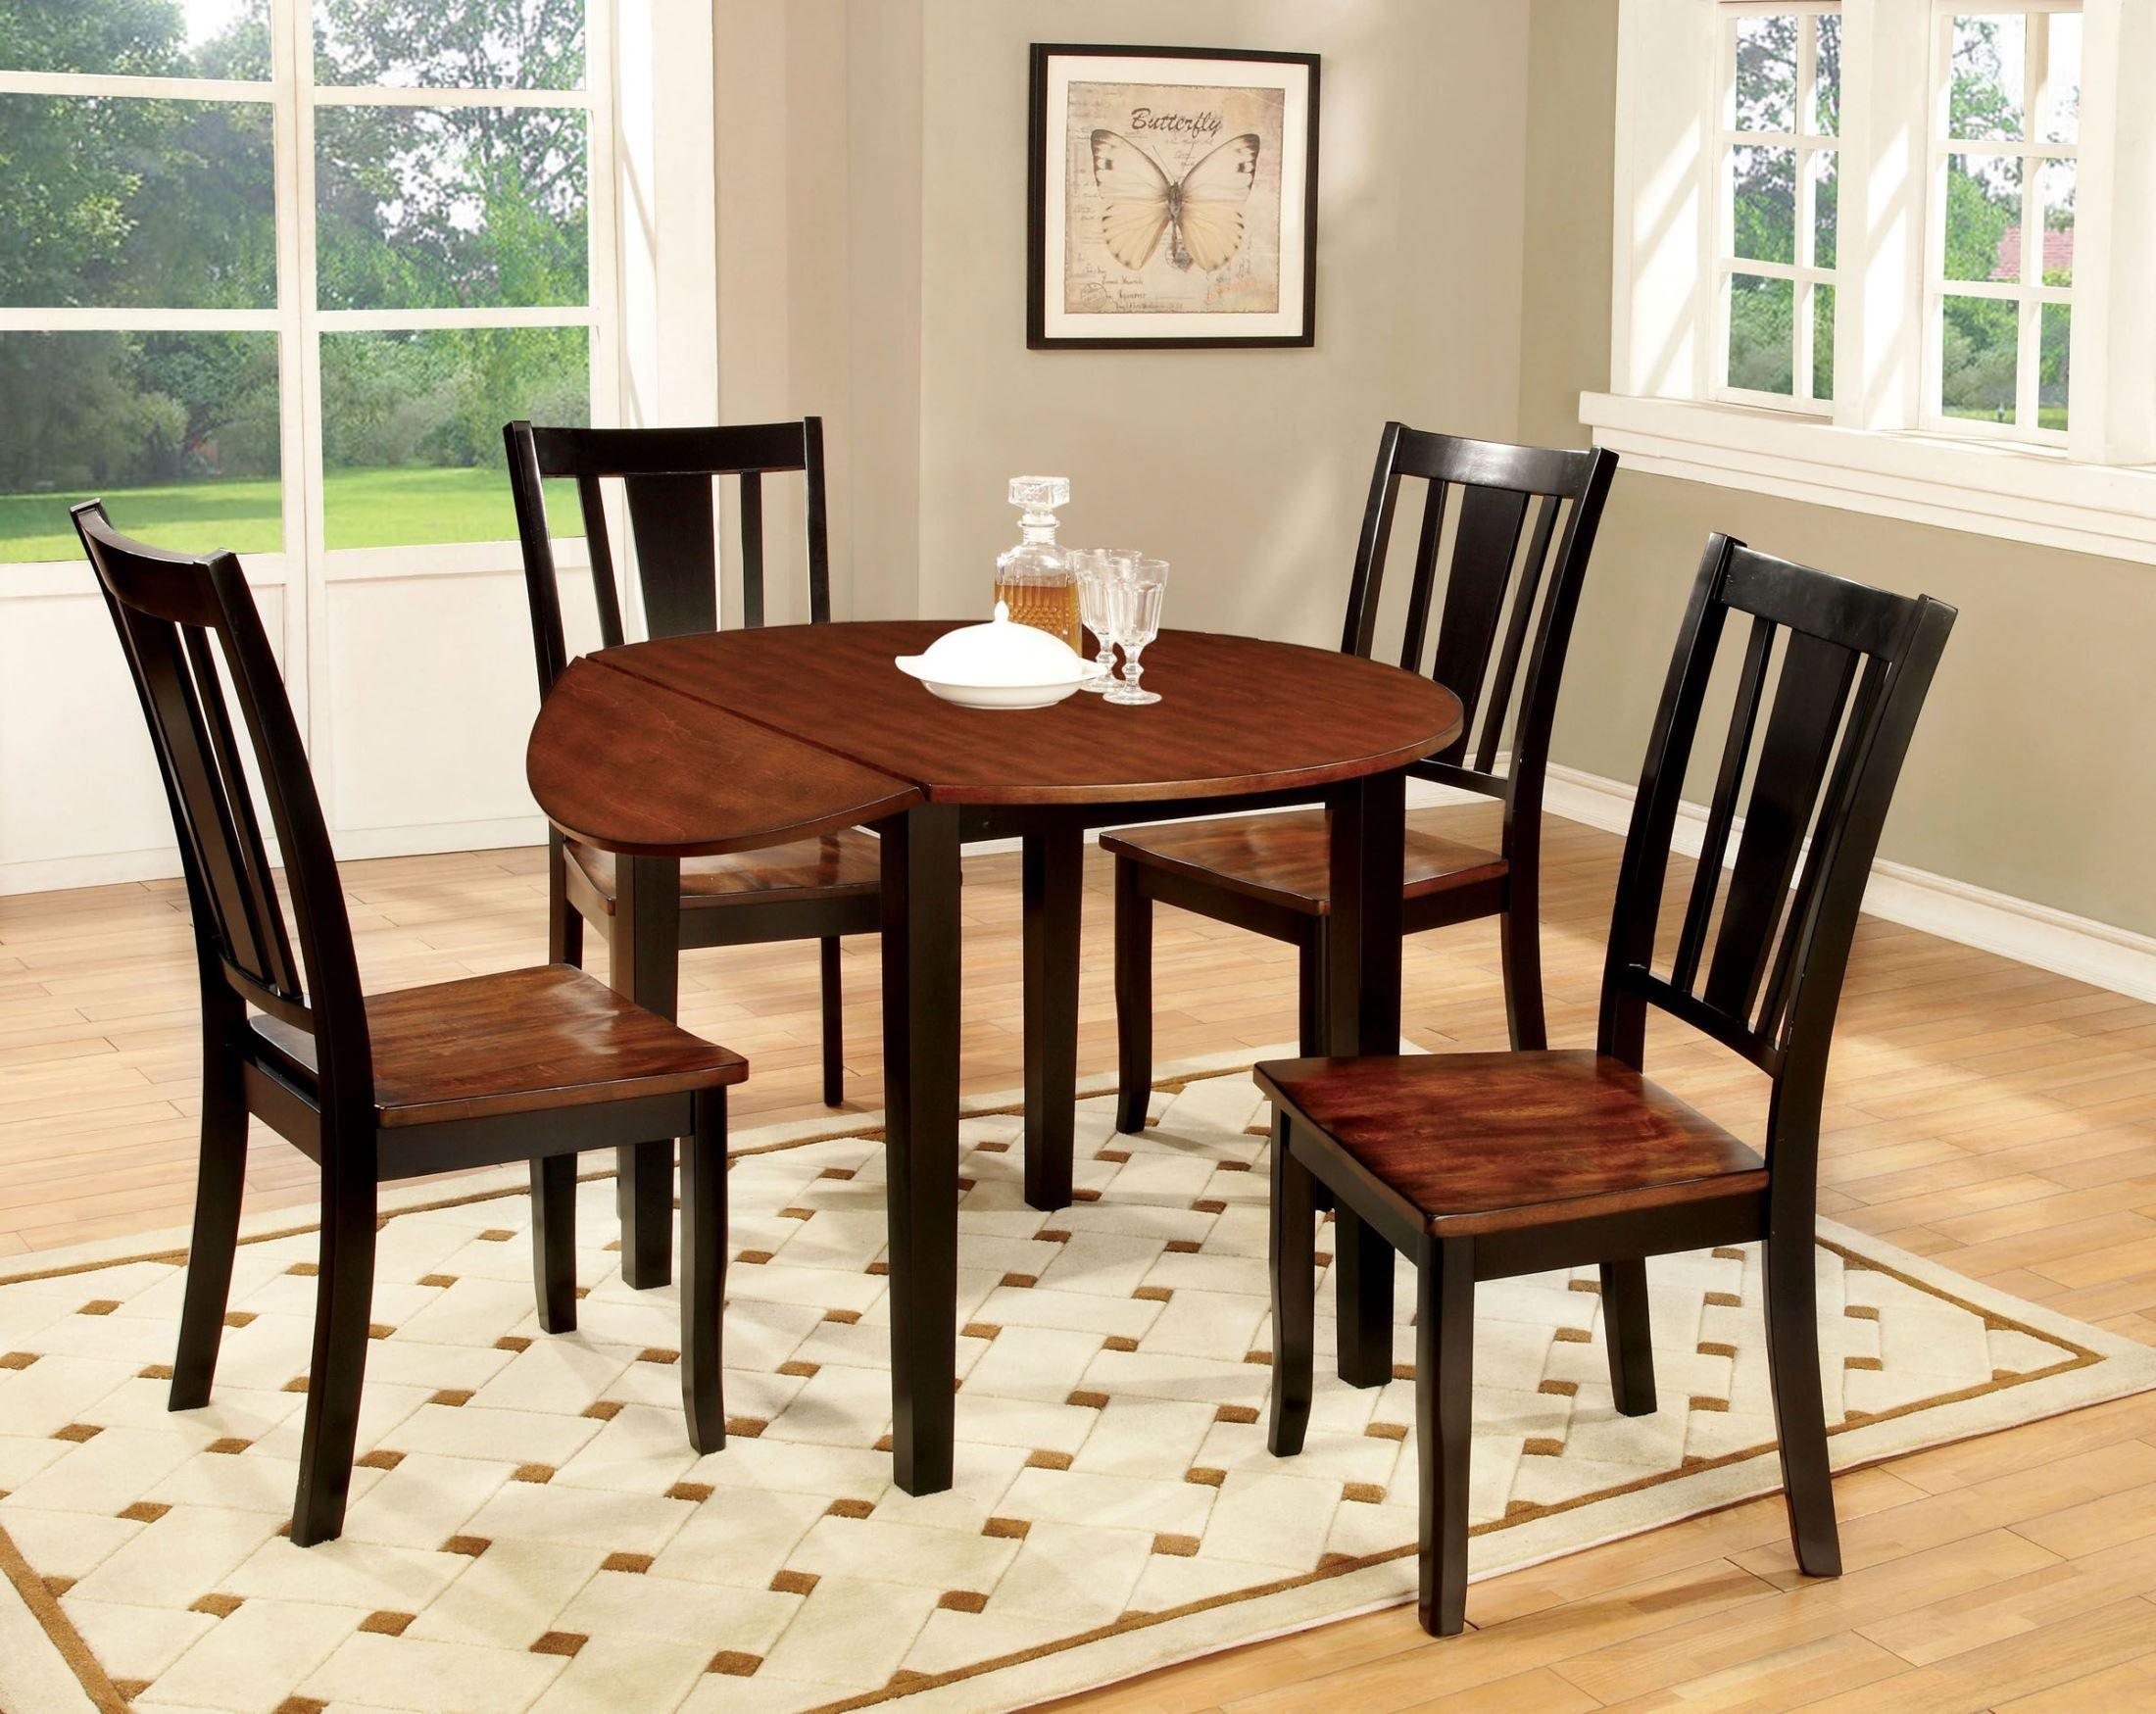 dover ii black and cherry drop leaf round dining room set cm3326bc rt furniture of america. Black Bedroom Furniture Sets. Home Design Ideas